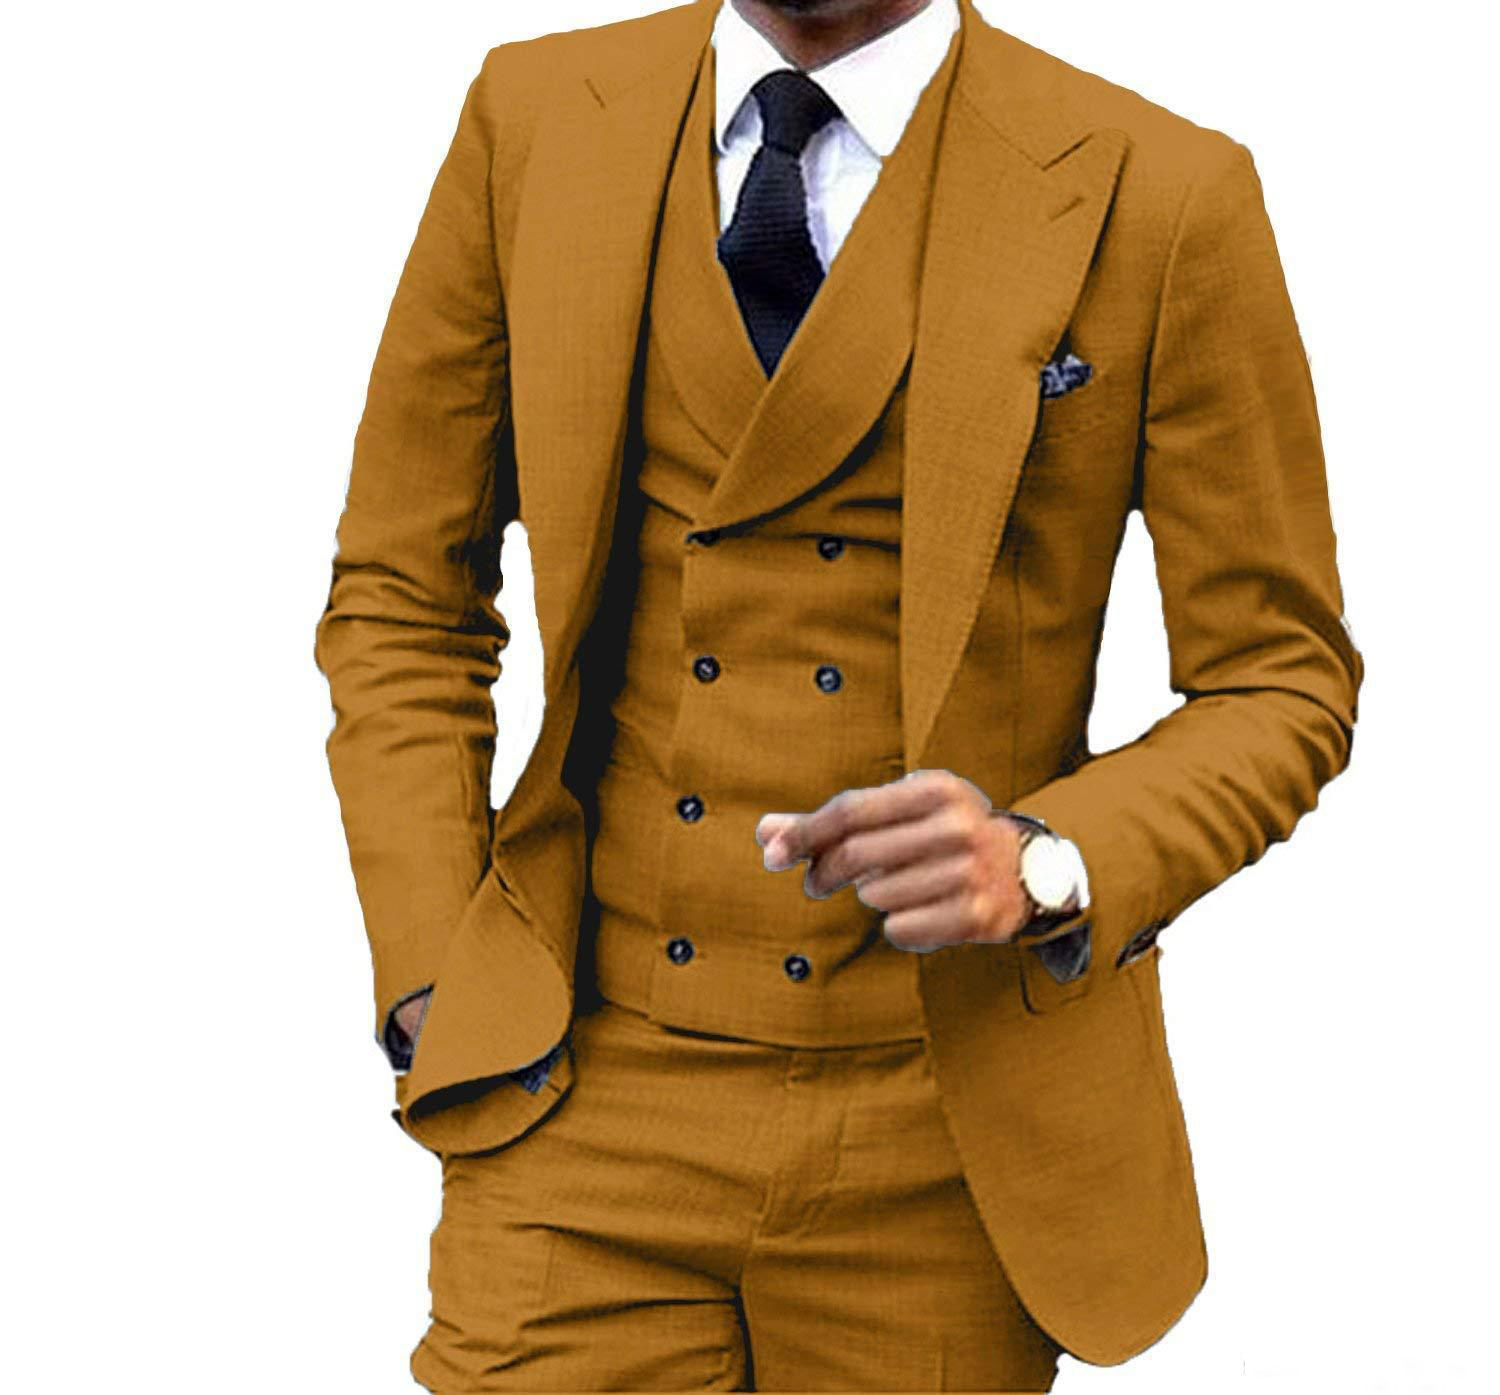 3 Pieces Slim Fit Brown Yellow Groom Tuxedos Peak Lapel Groomsmen Men Wedding Suit  Jacket Blazer 3Piece Suit(Jacket+Pants+ 1